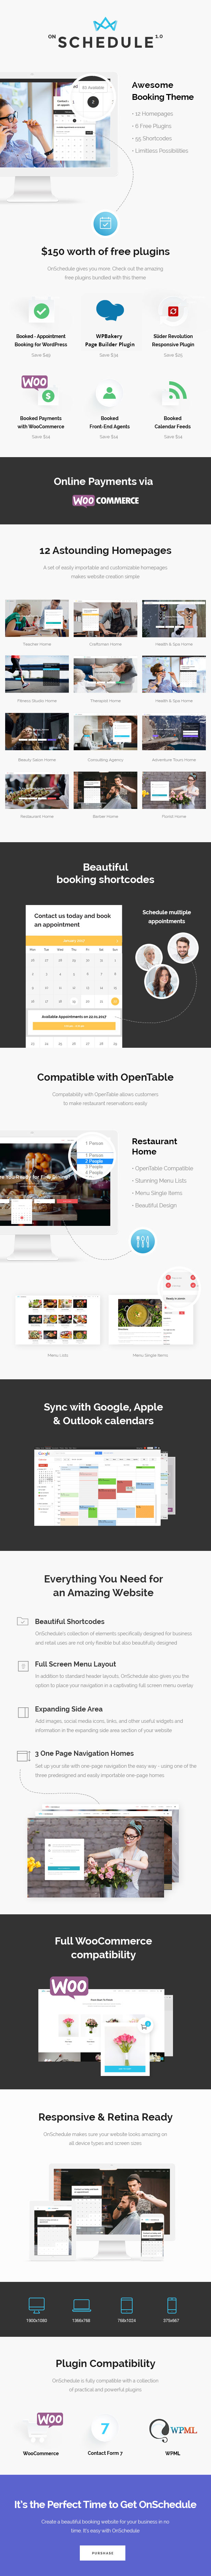 OnSchedule - Retail Booking Theme - 1